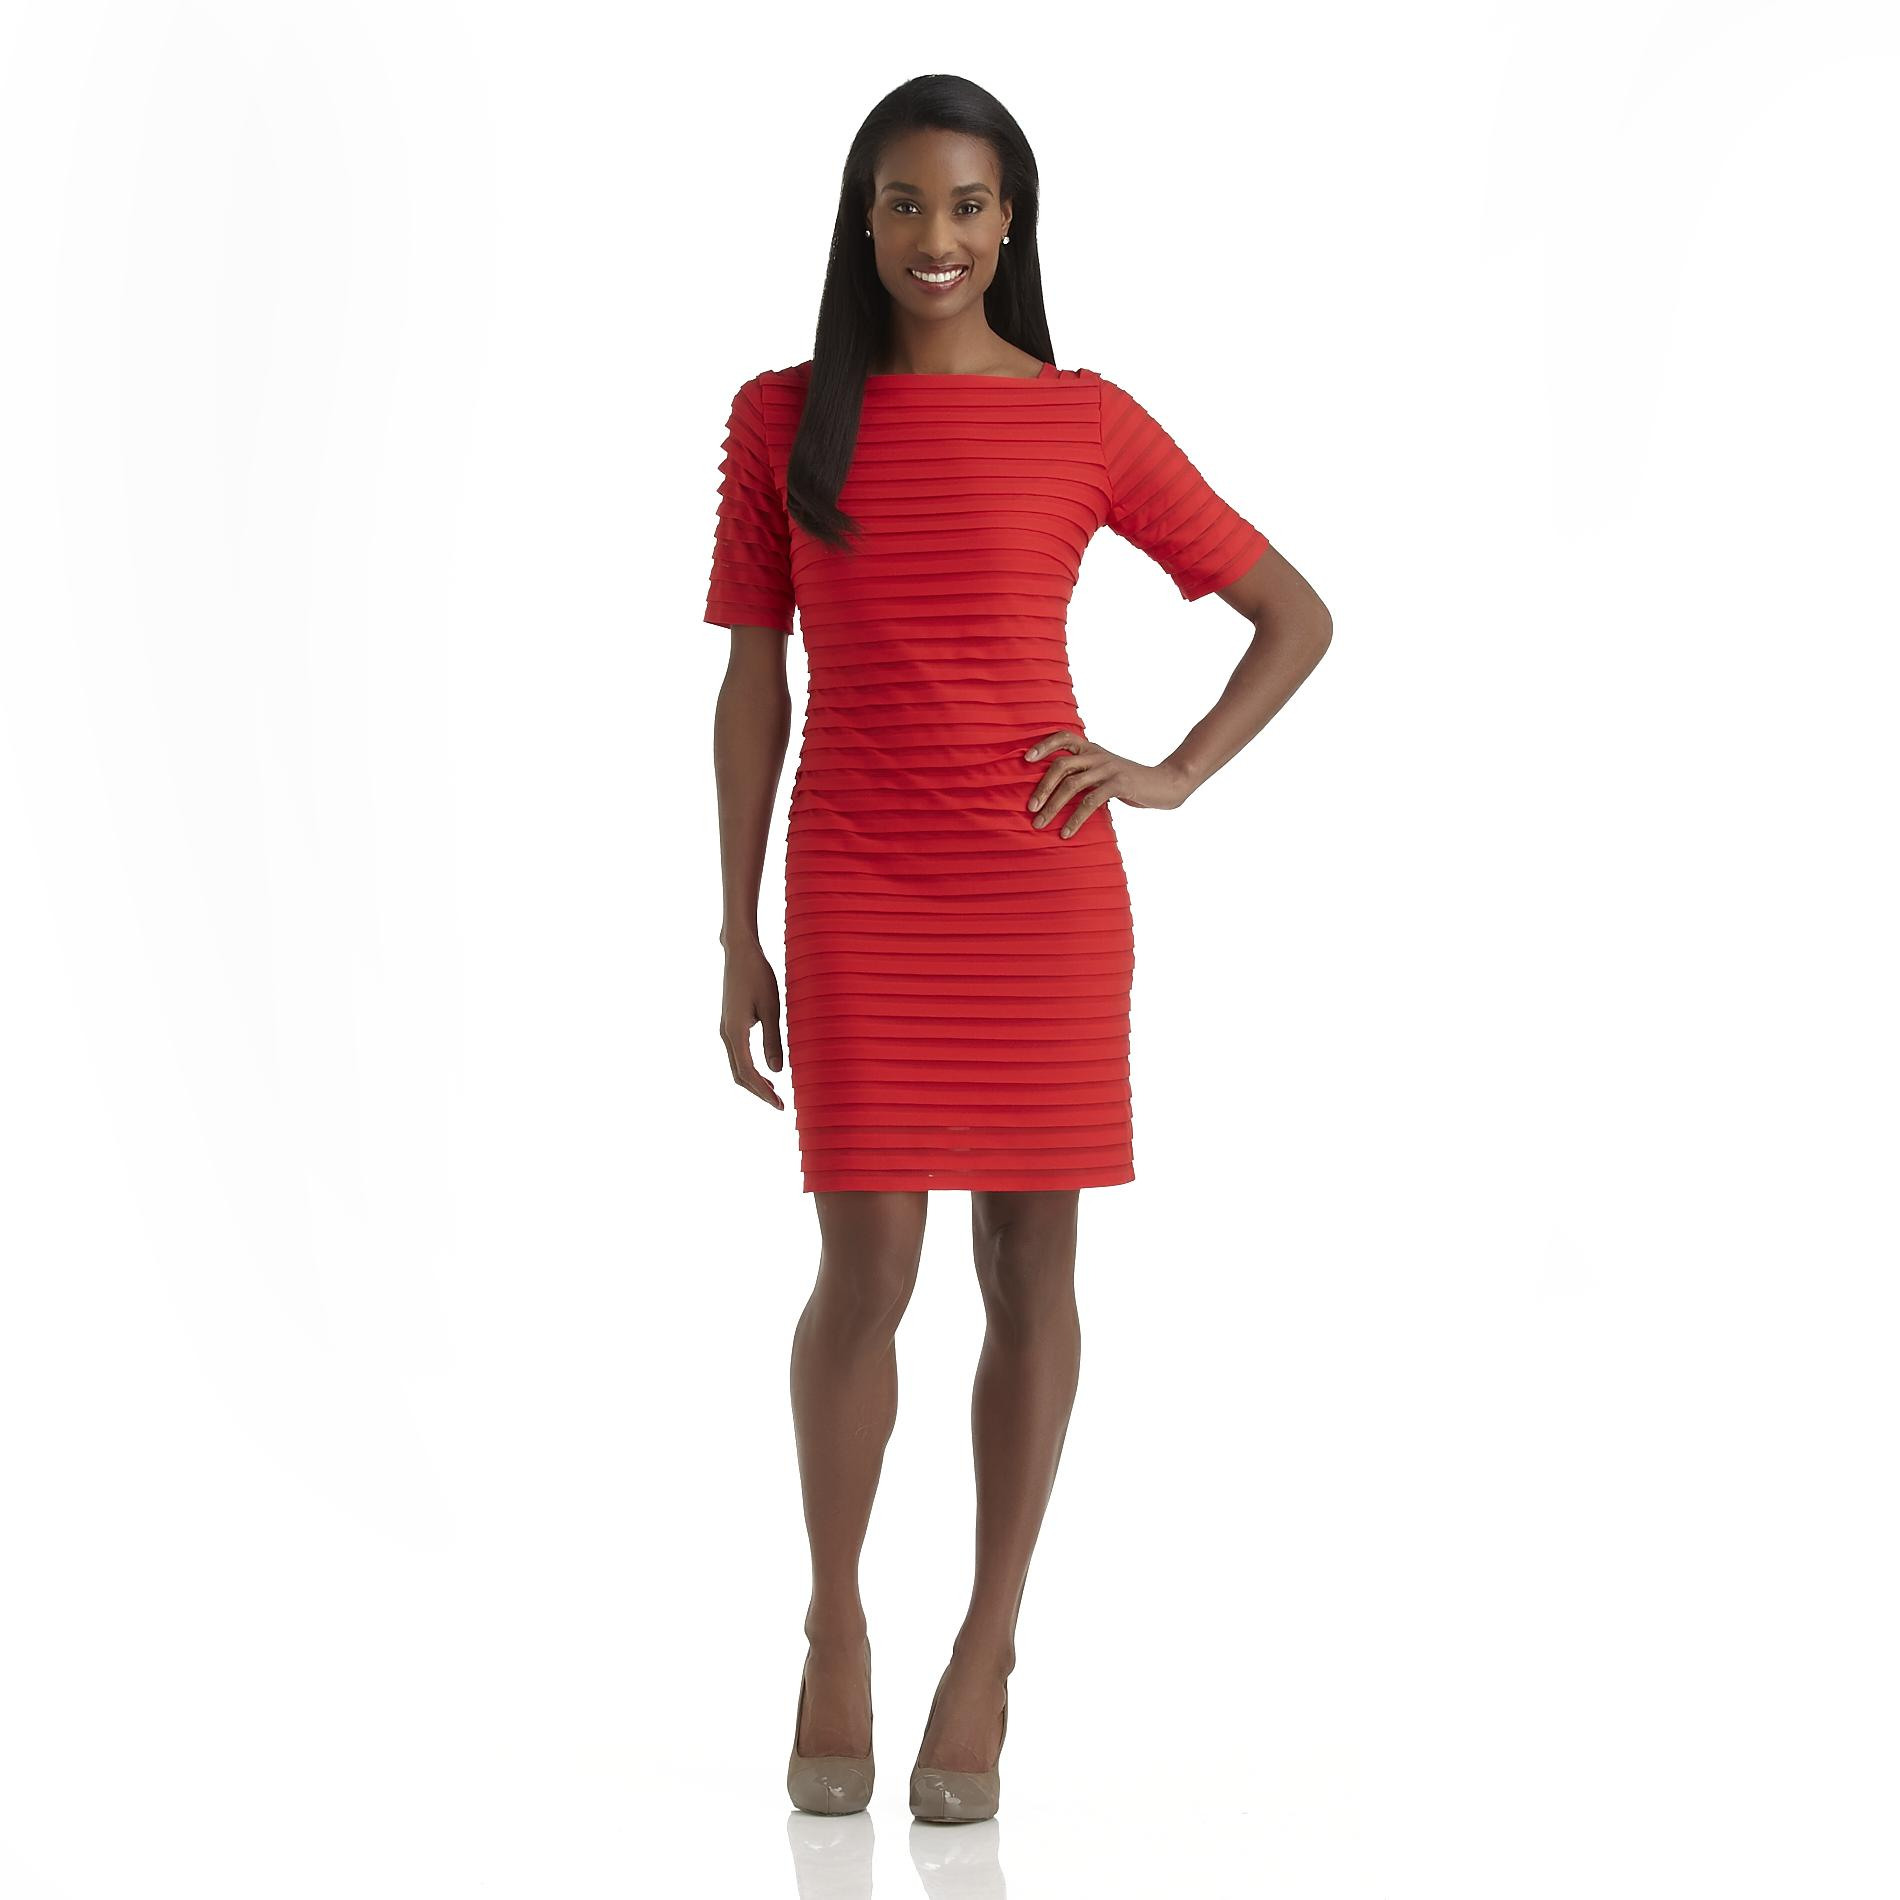 Studio 1 Women's Shutter Pleated Short-Sleeve Dress at Sears.com